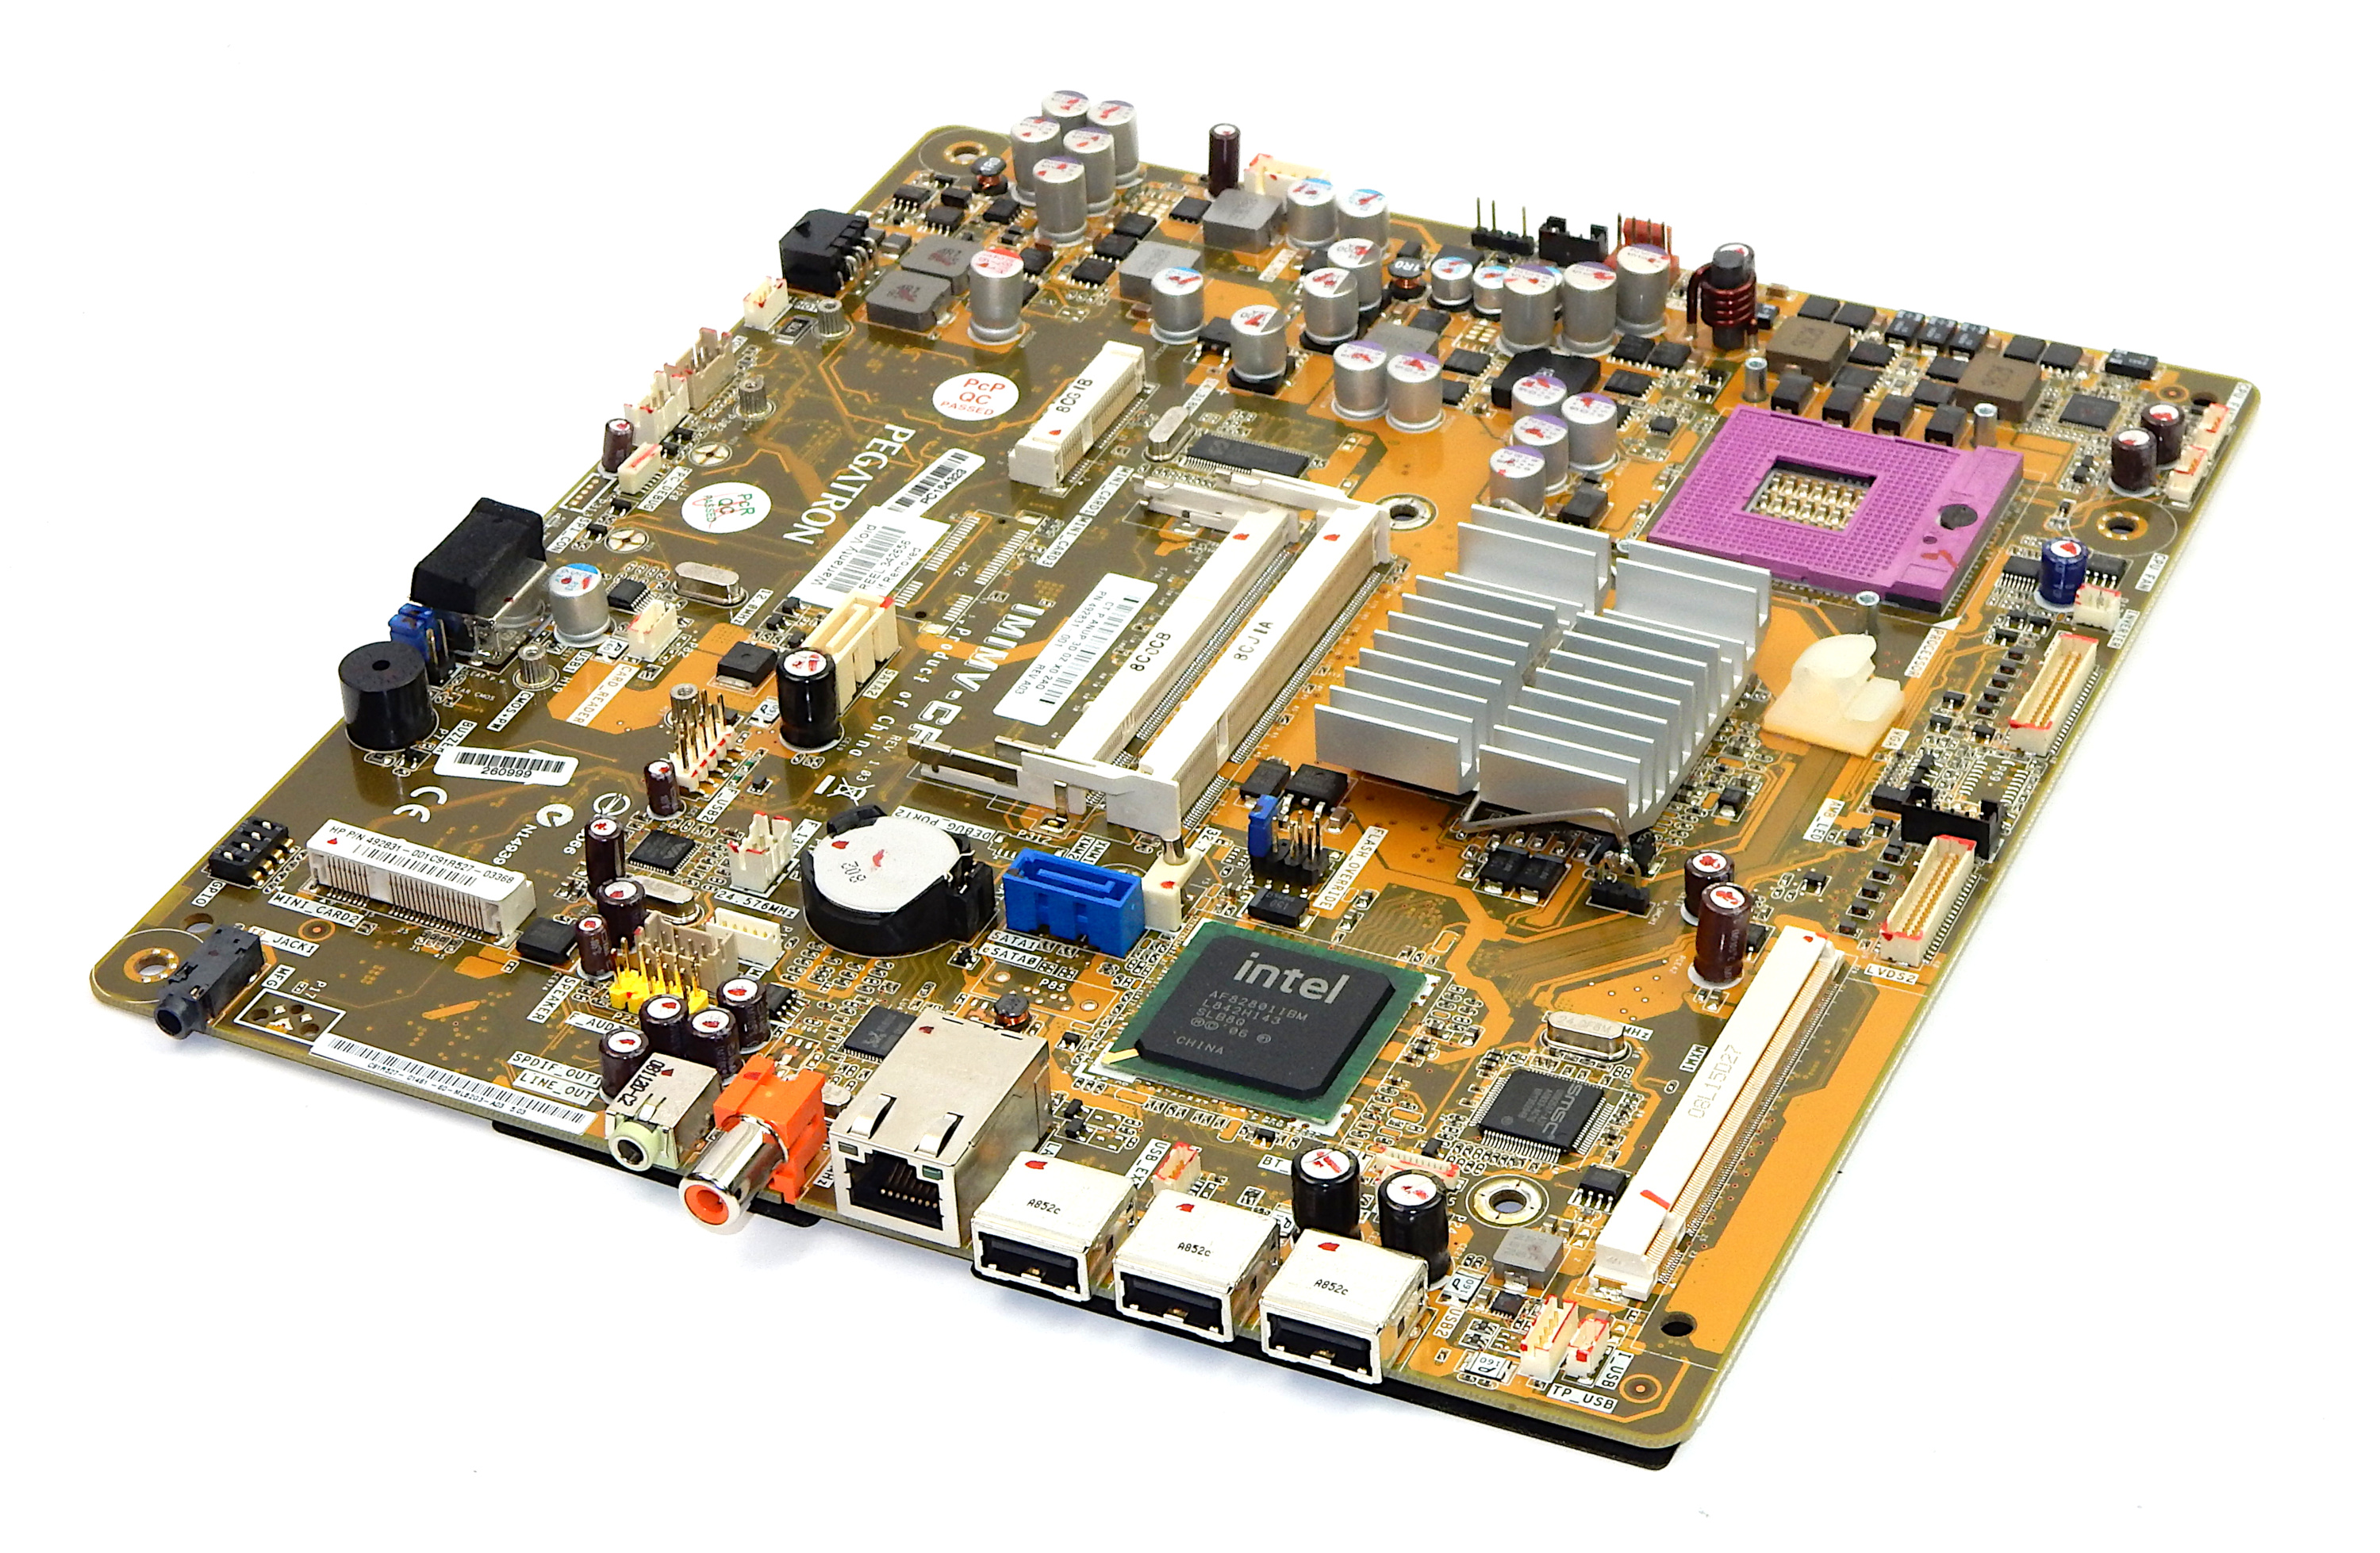 HP 492831-001 Touchsmart IQ500/800 AiO Motherboard IMIMV-CF